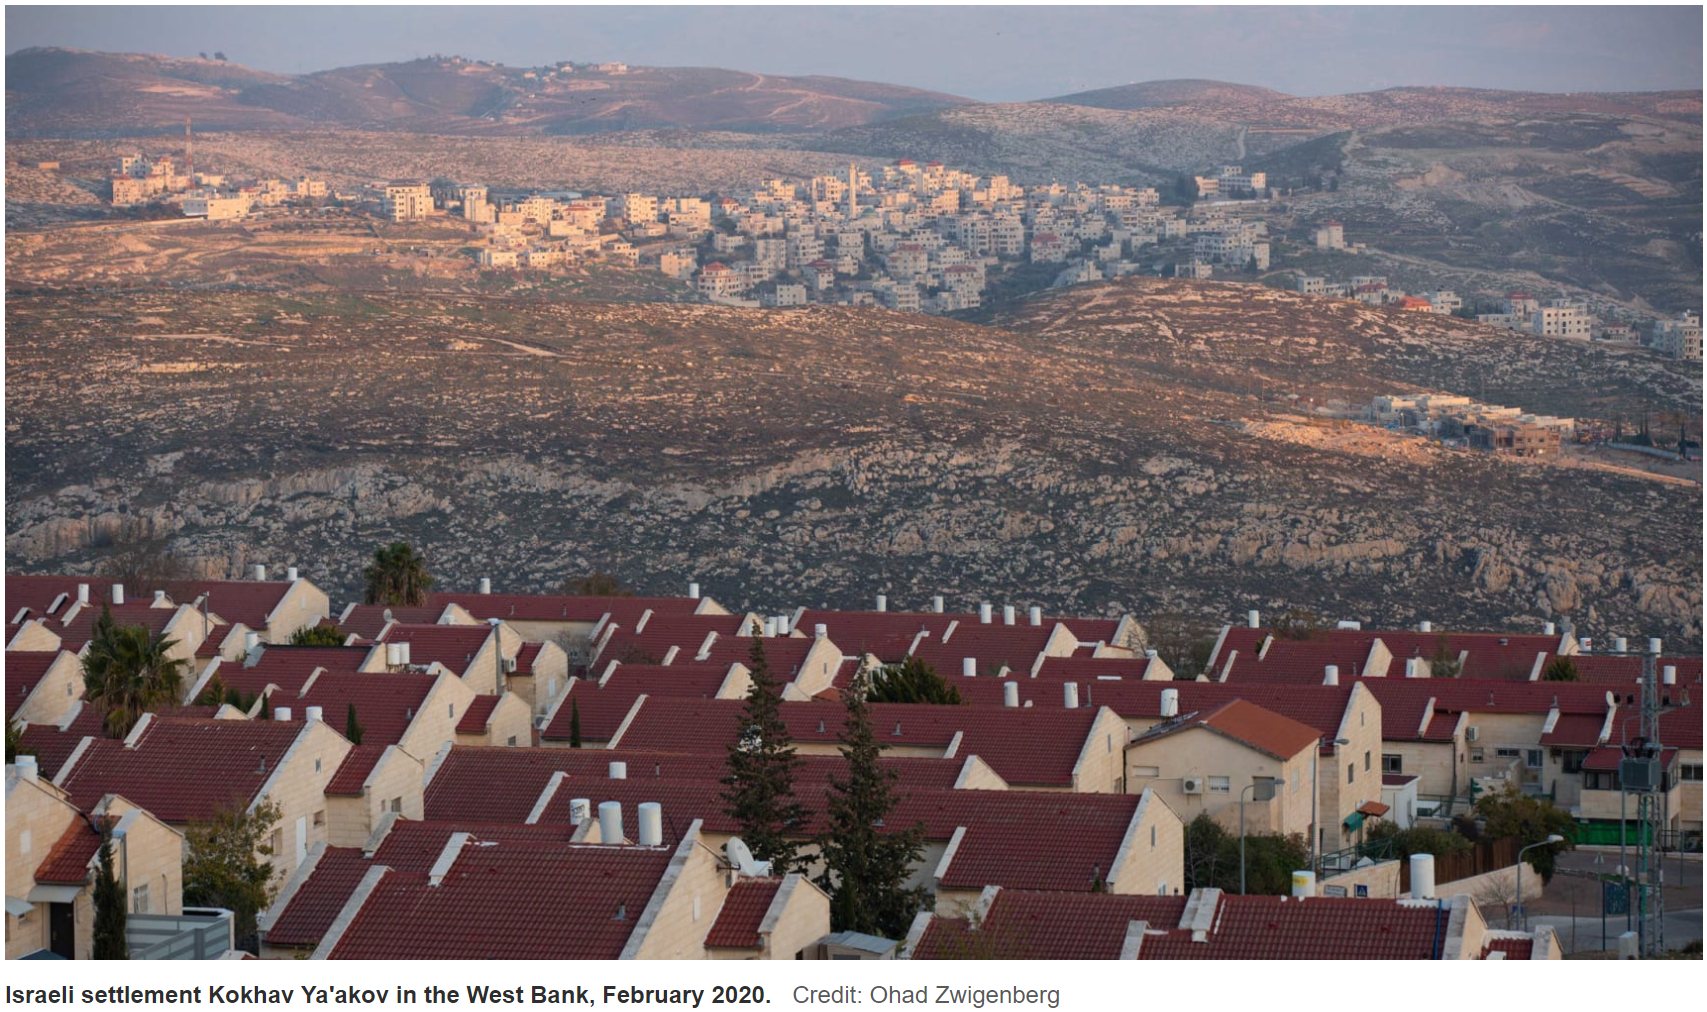 Israeli settlement Kokhav Ya'akov in the West Bank, February 2020